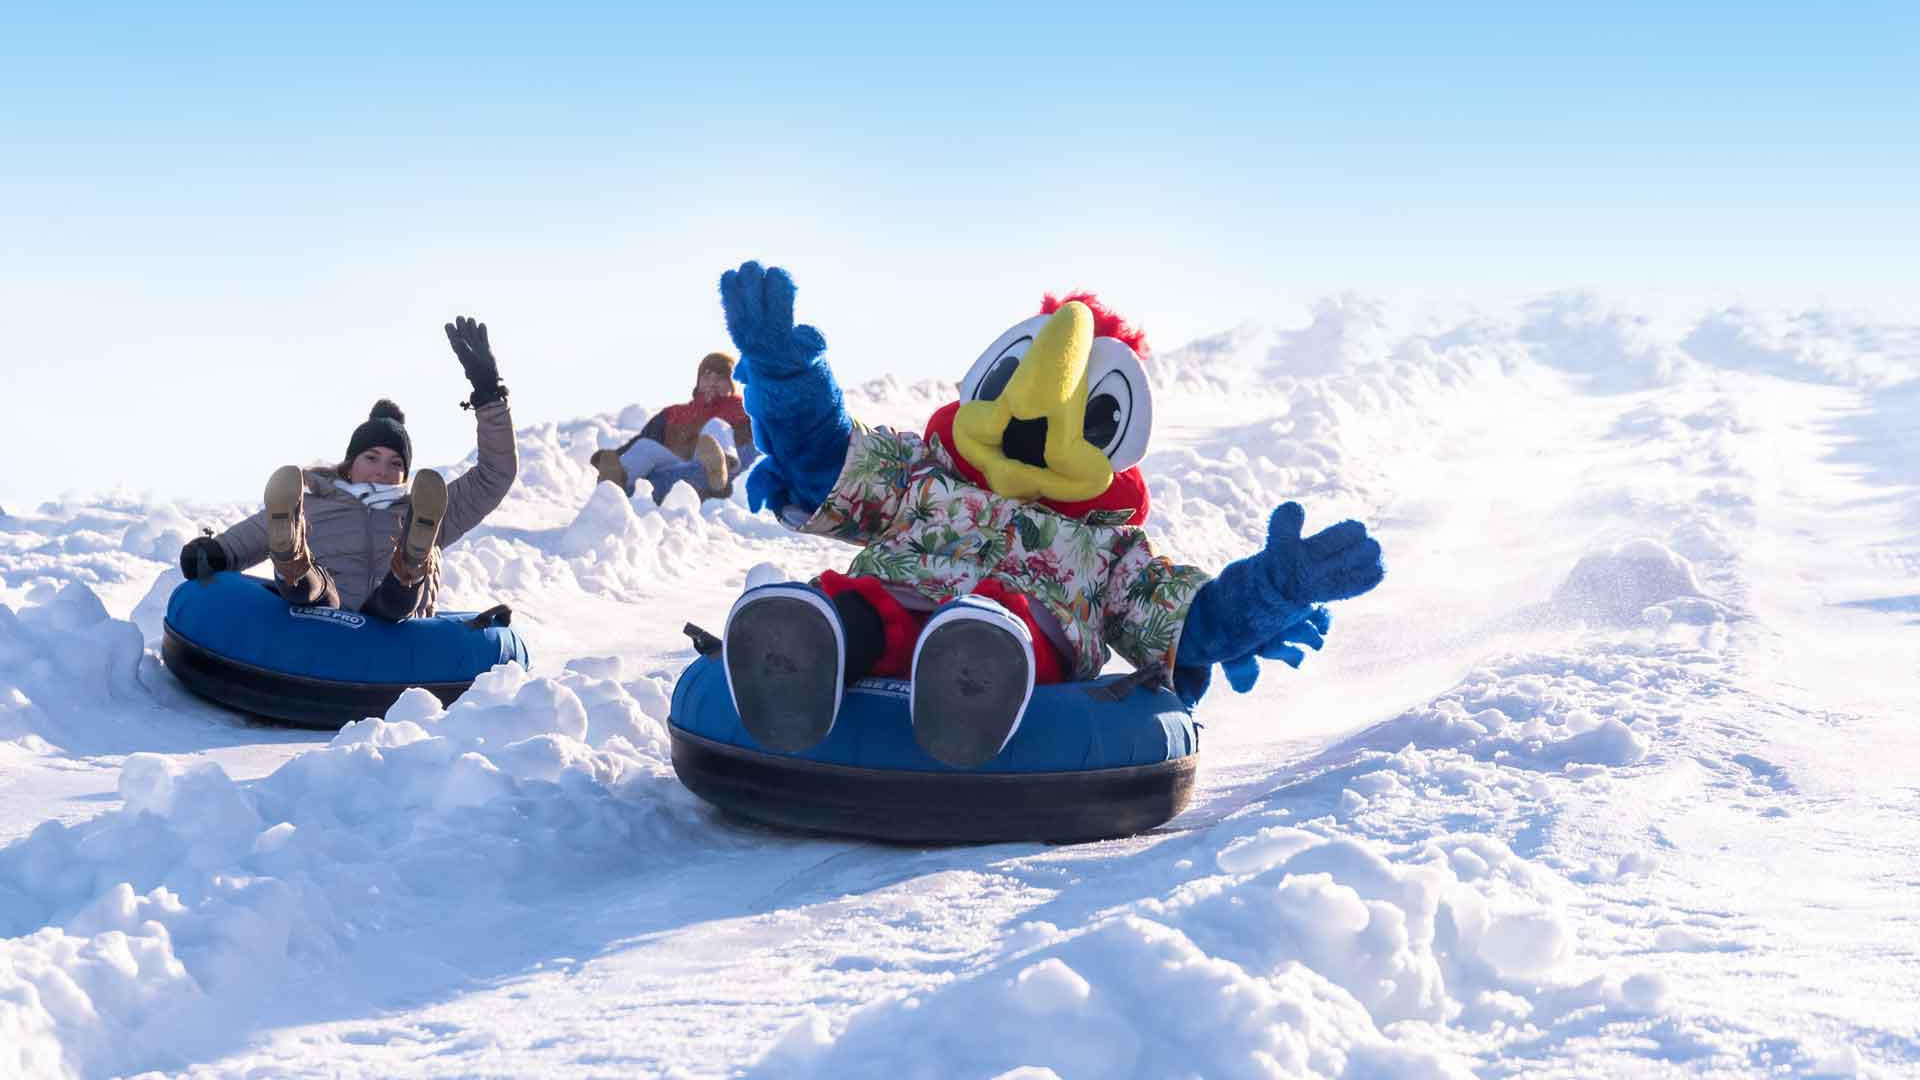 Snow Tubing with Sid the Parrot